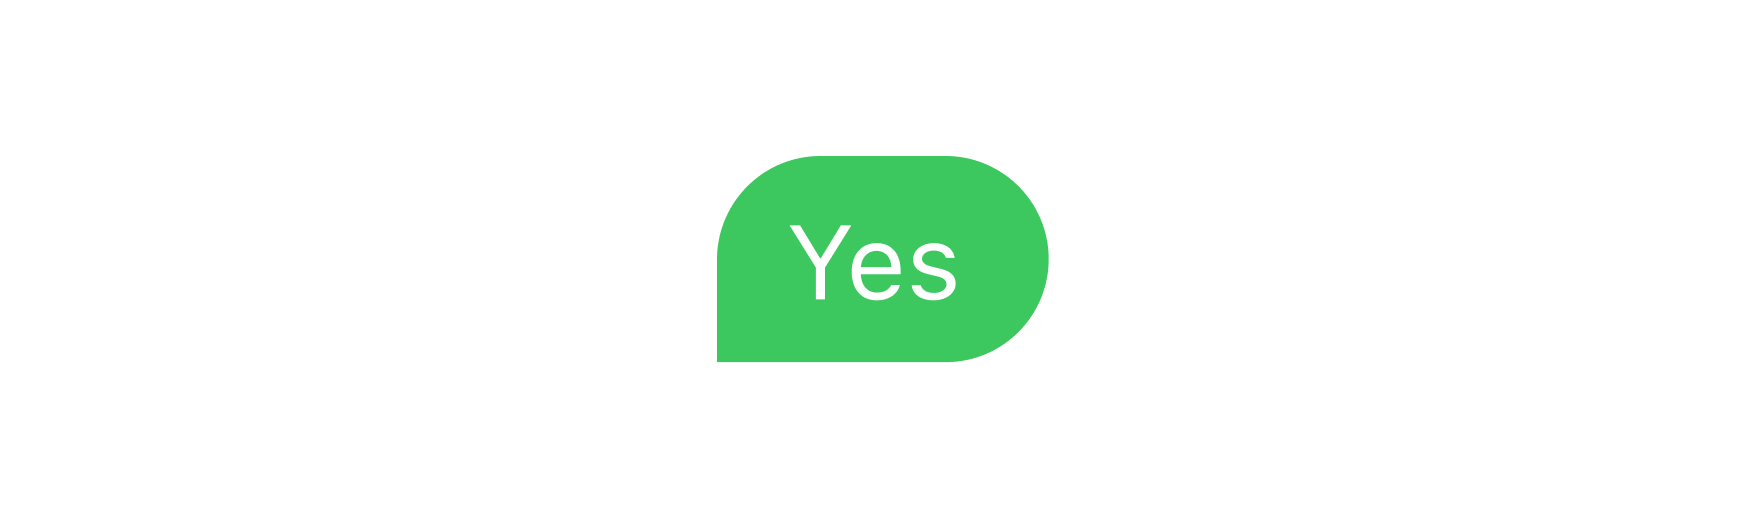 """Image of a sent text message saying """"Yes"""""""